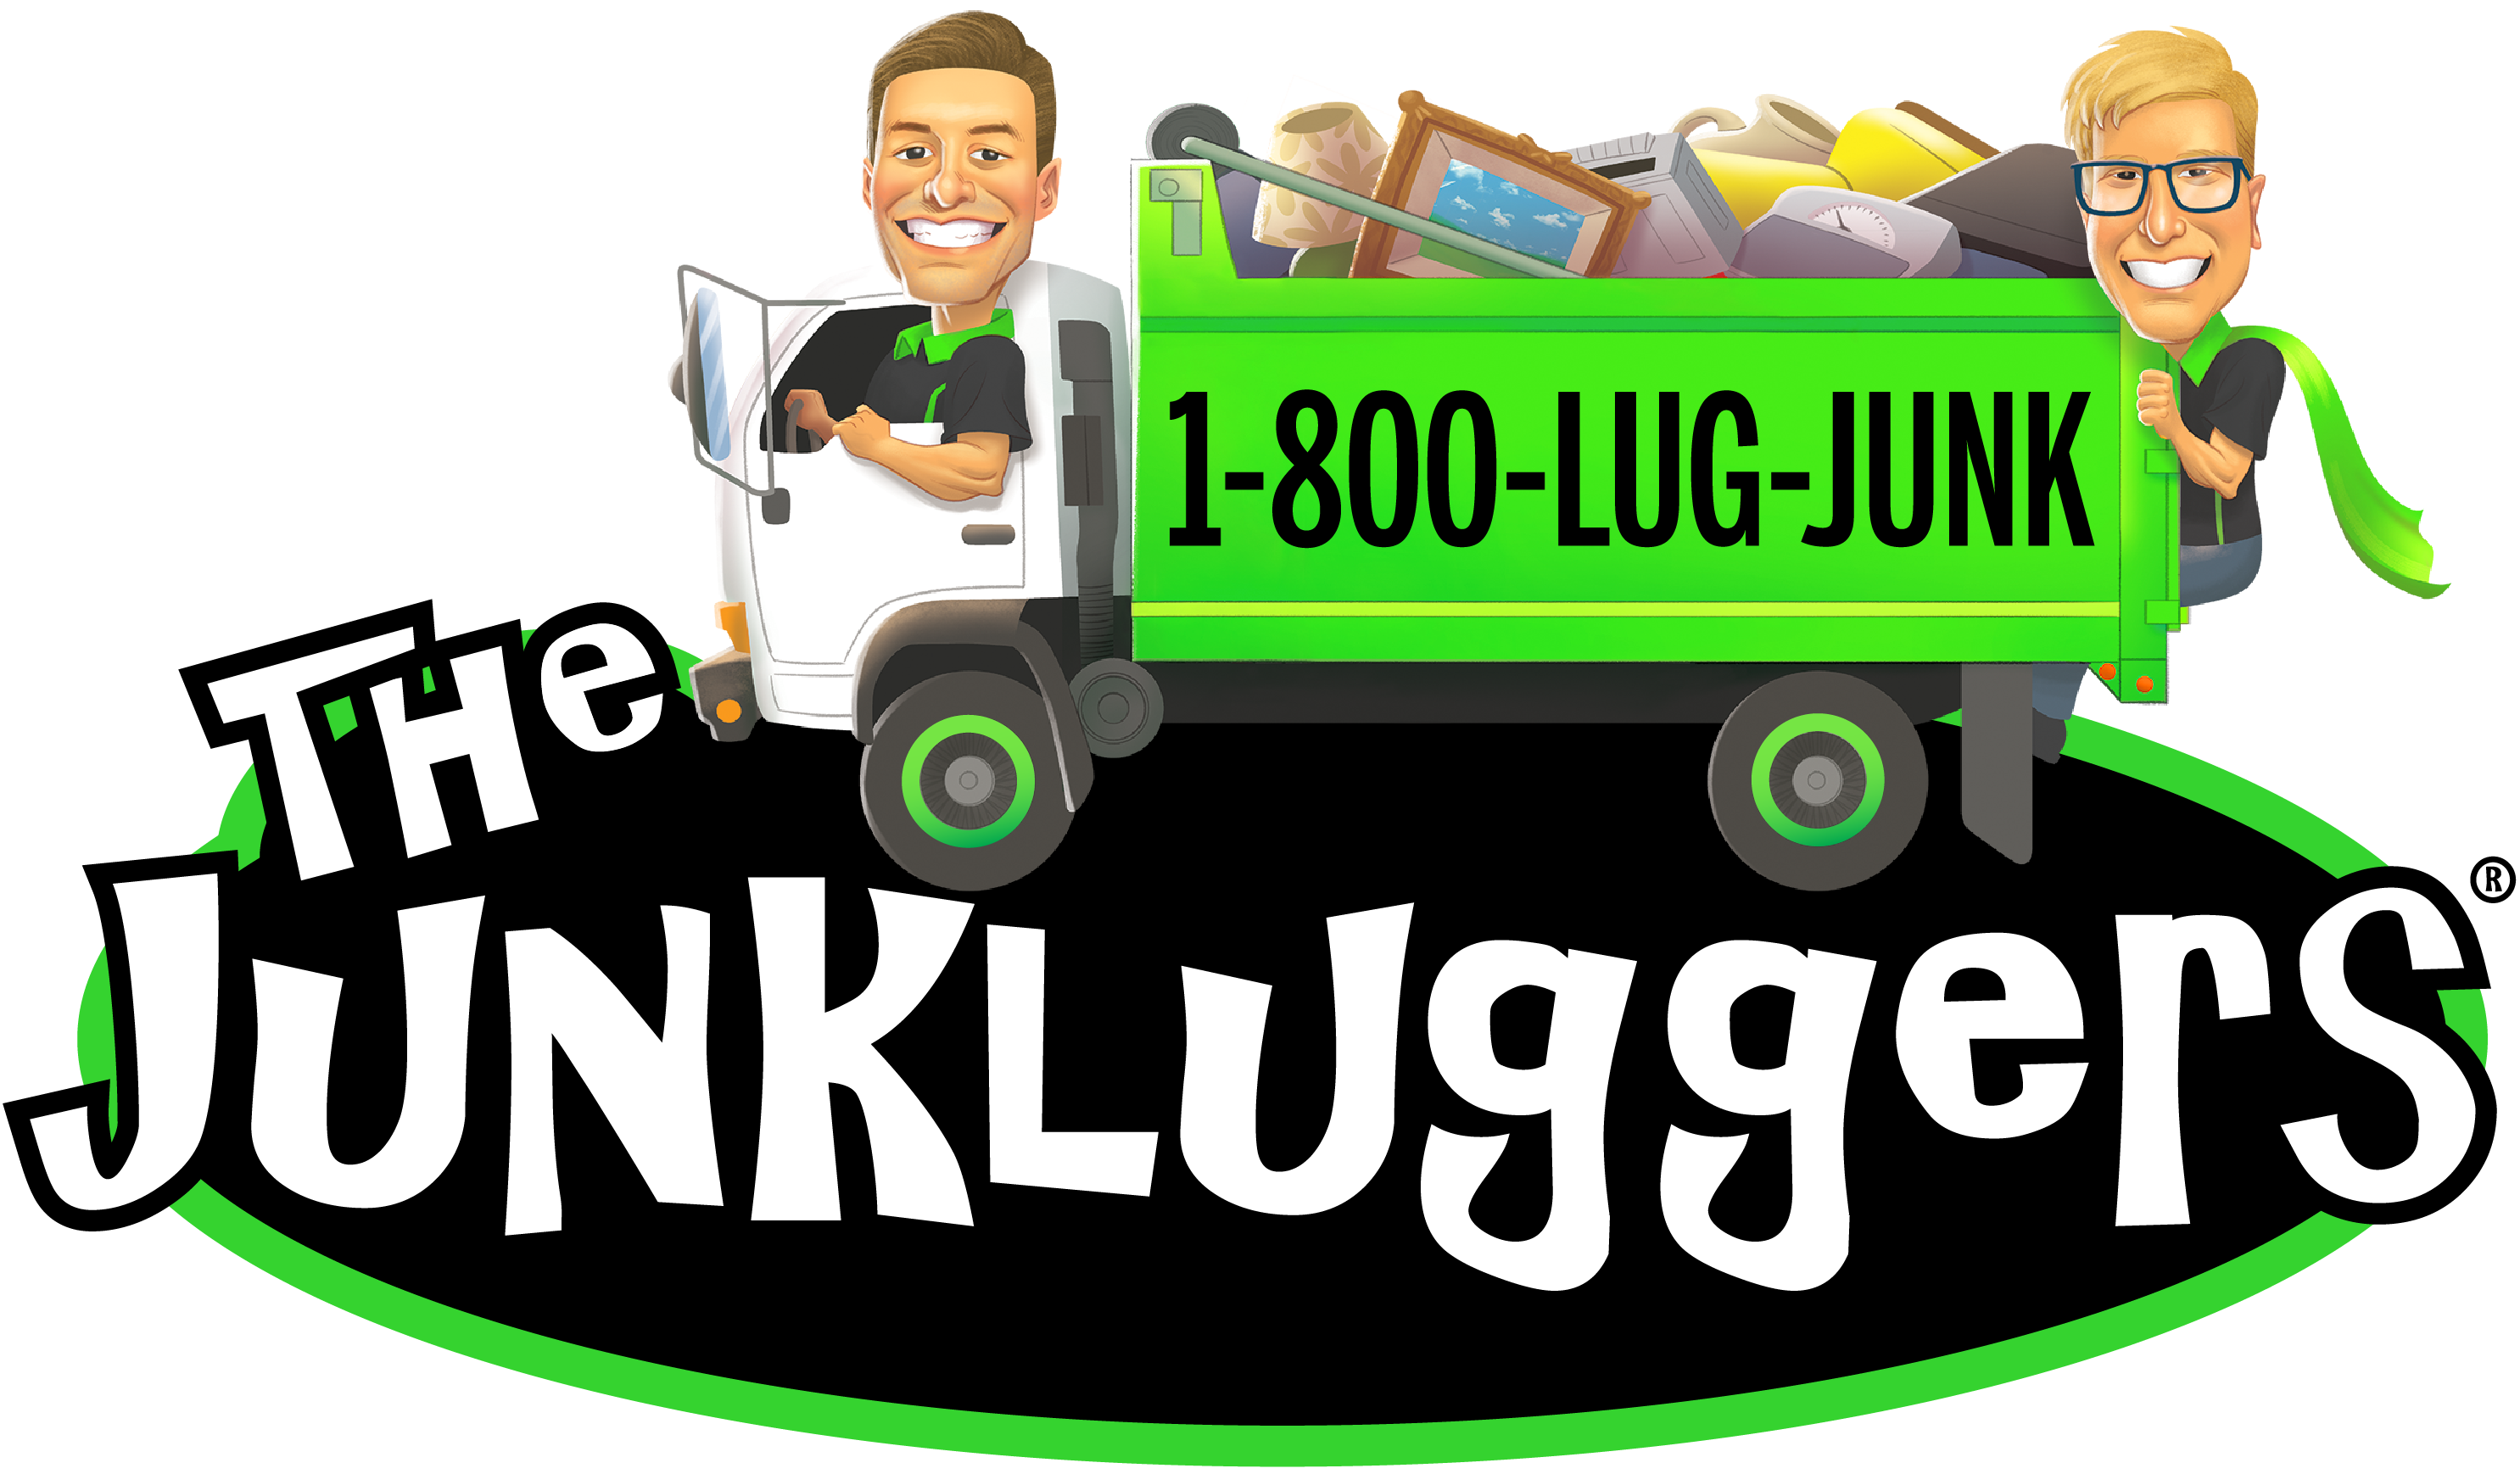 The Junkluggers Hauling & Recycling logo